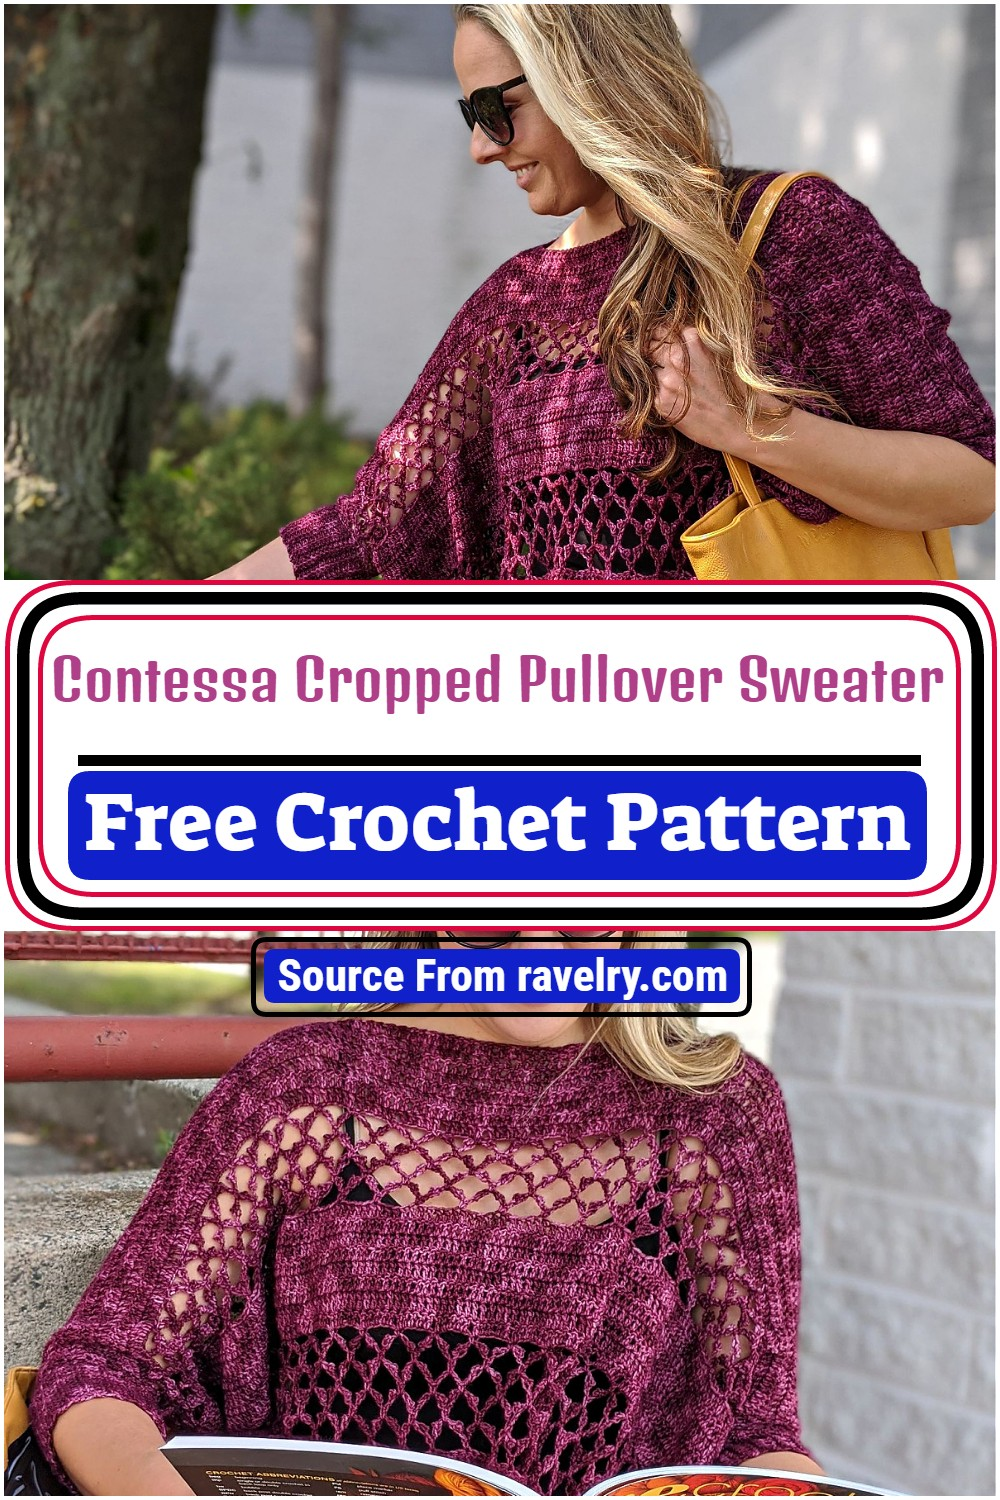 Contessa Cropped Pullover Sweater Pattern